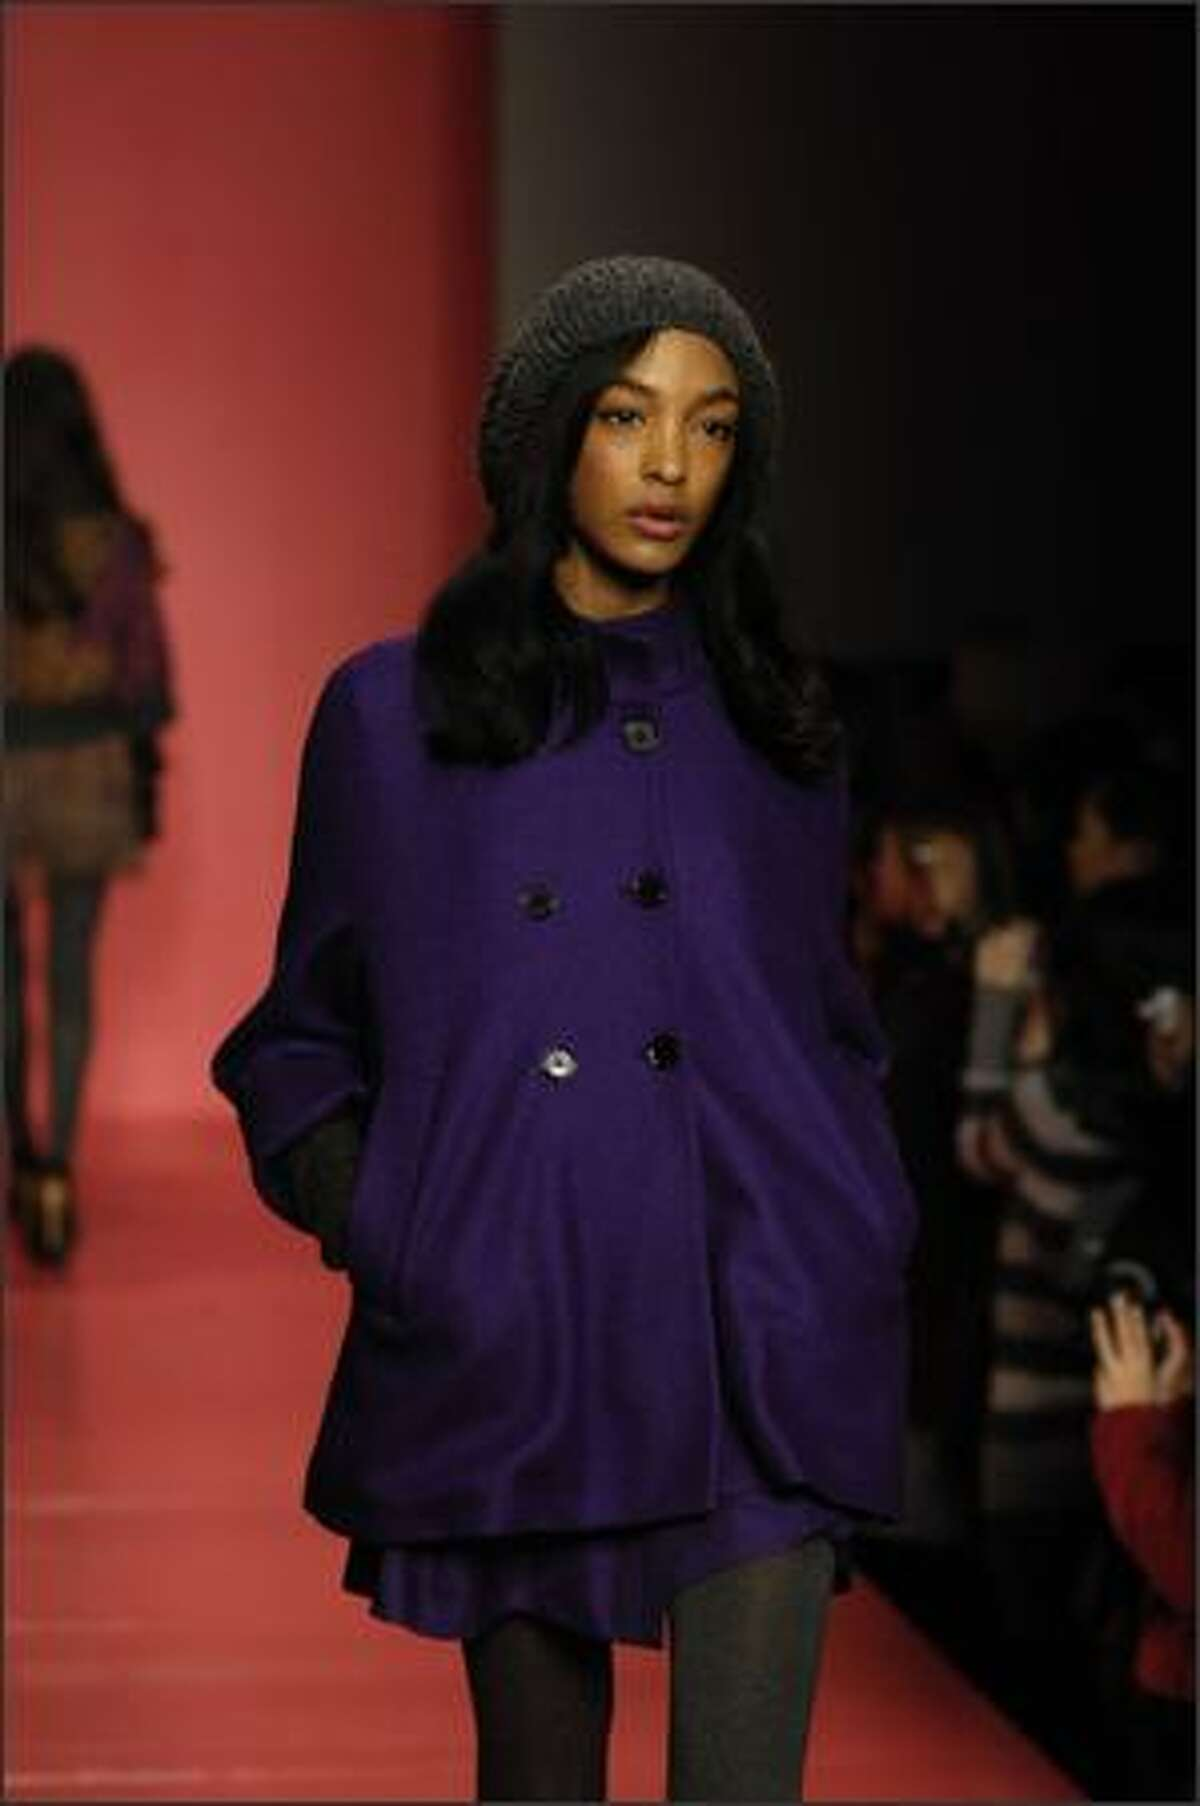 A model walks the runway at the DKNY Fall 2008 fashion show during Mercedes-Benz Fashion Week Fall 2008 on February 3, 2008 in New York City.